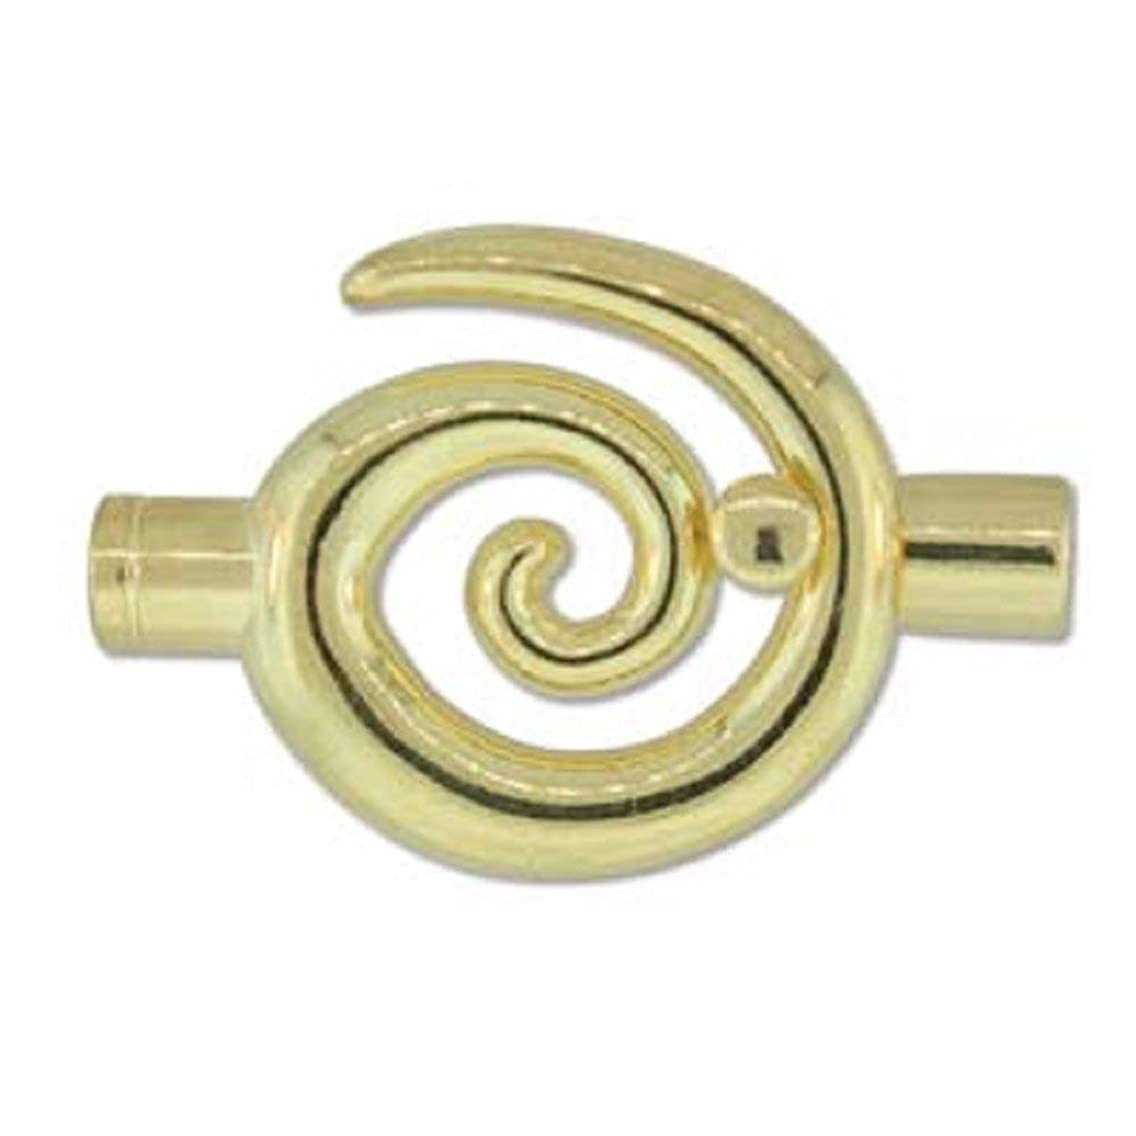 BeadSmith Large Glue In Swirl Toggle Clasps - Gold Plate - Perfect Clasp for Kumihimo - 6.2mm Diameter - 2 Clasps